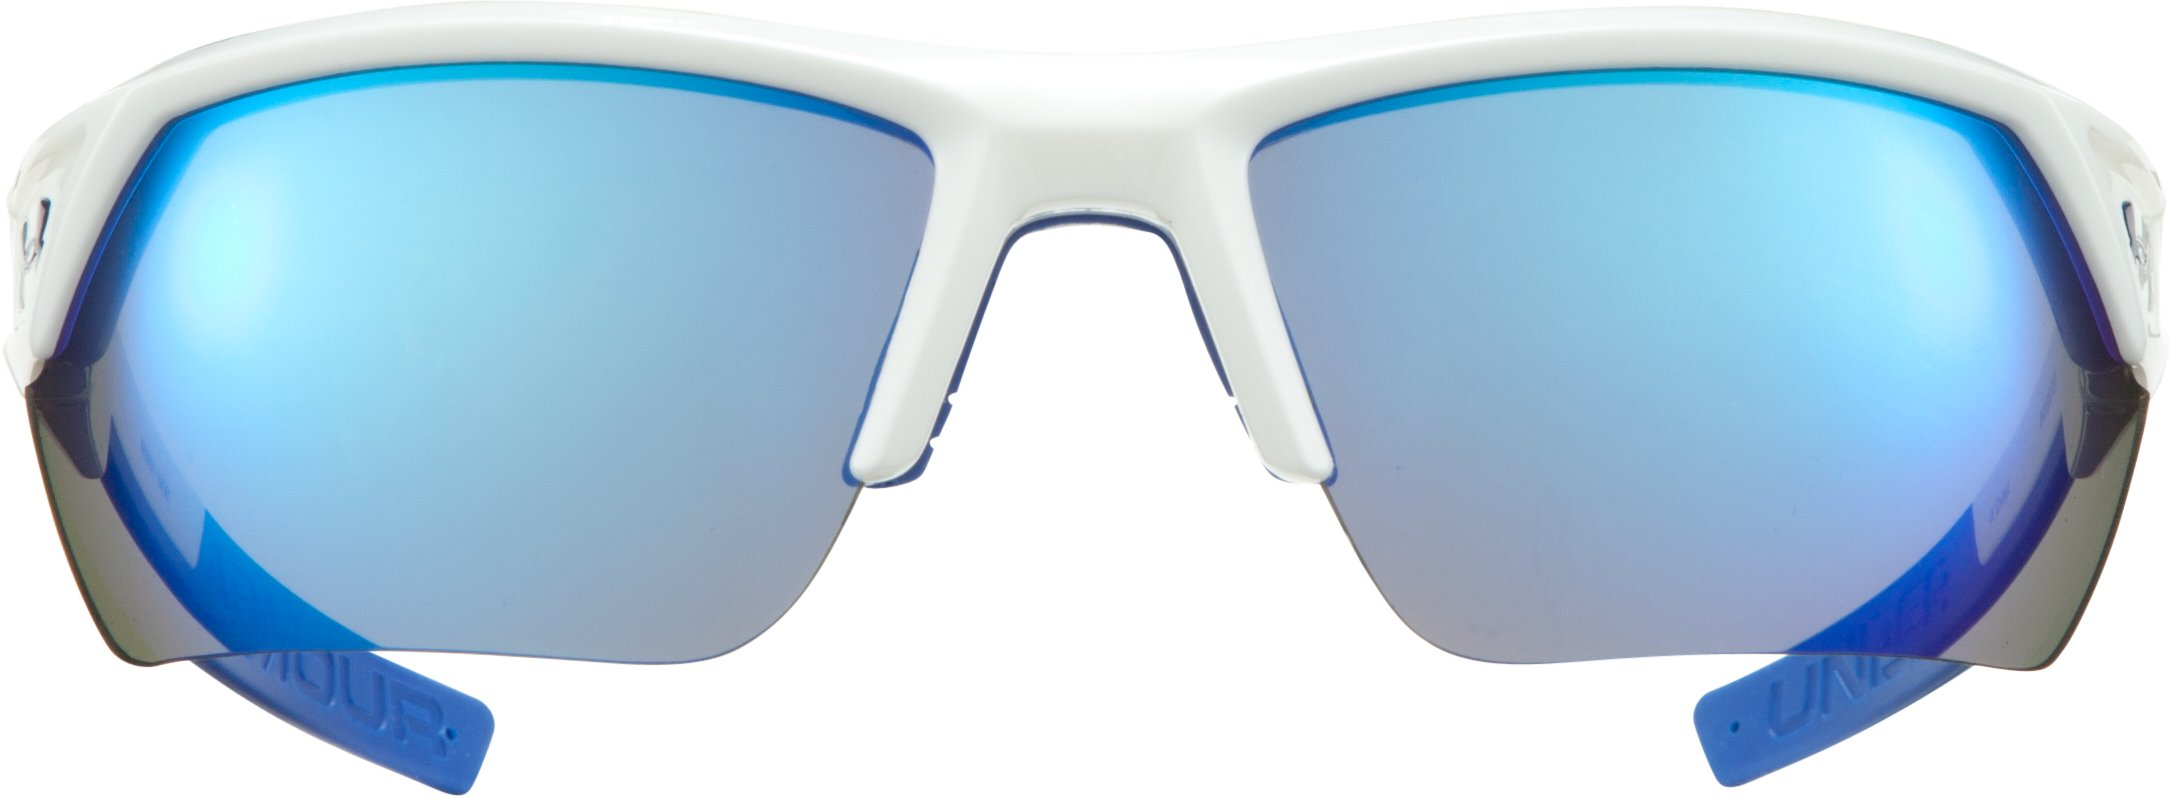 UA Igniter 2.0 Sunglasses, White, undefined